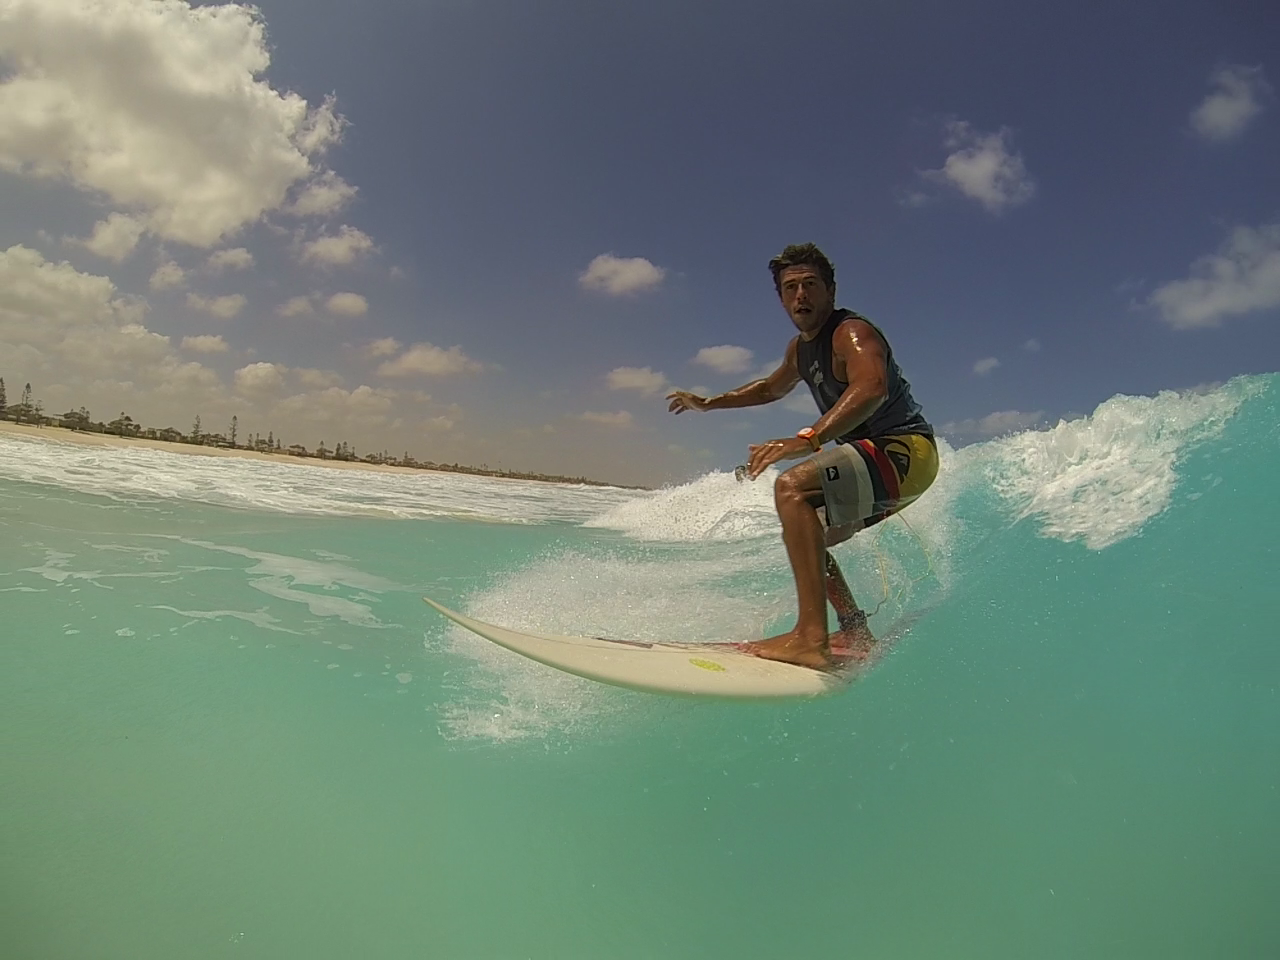 Omar El Sobky: From Engineer To Surfer To Entrepreneur